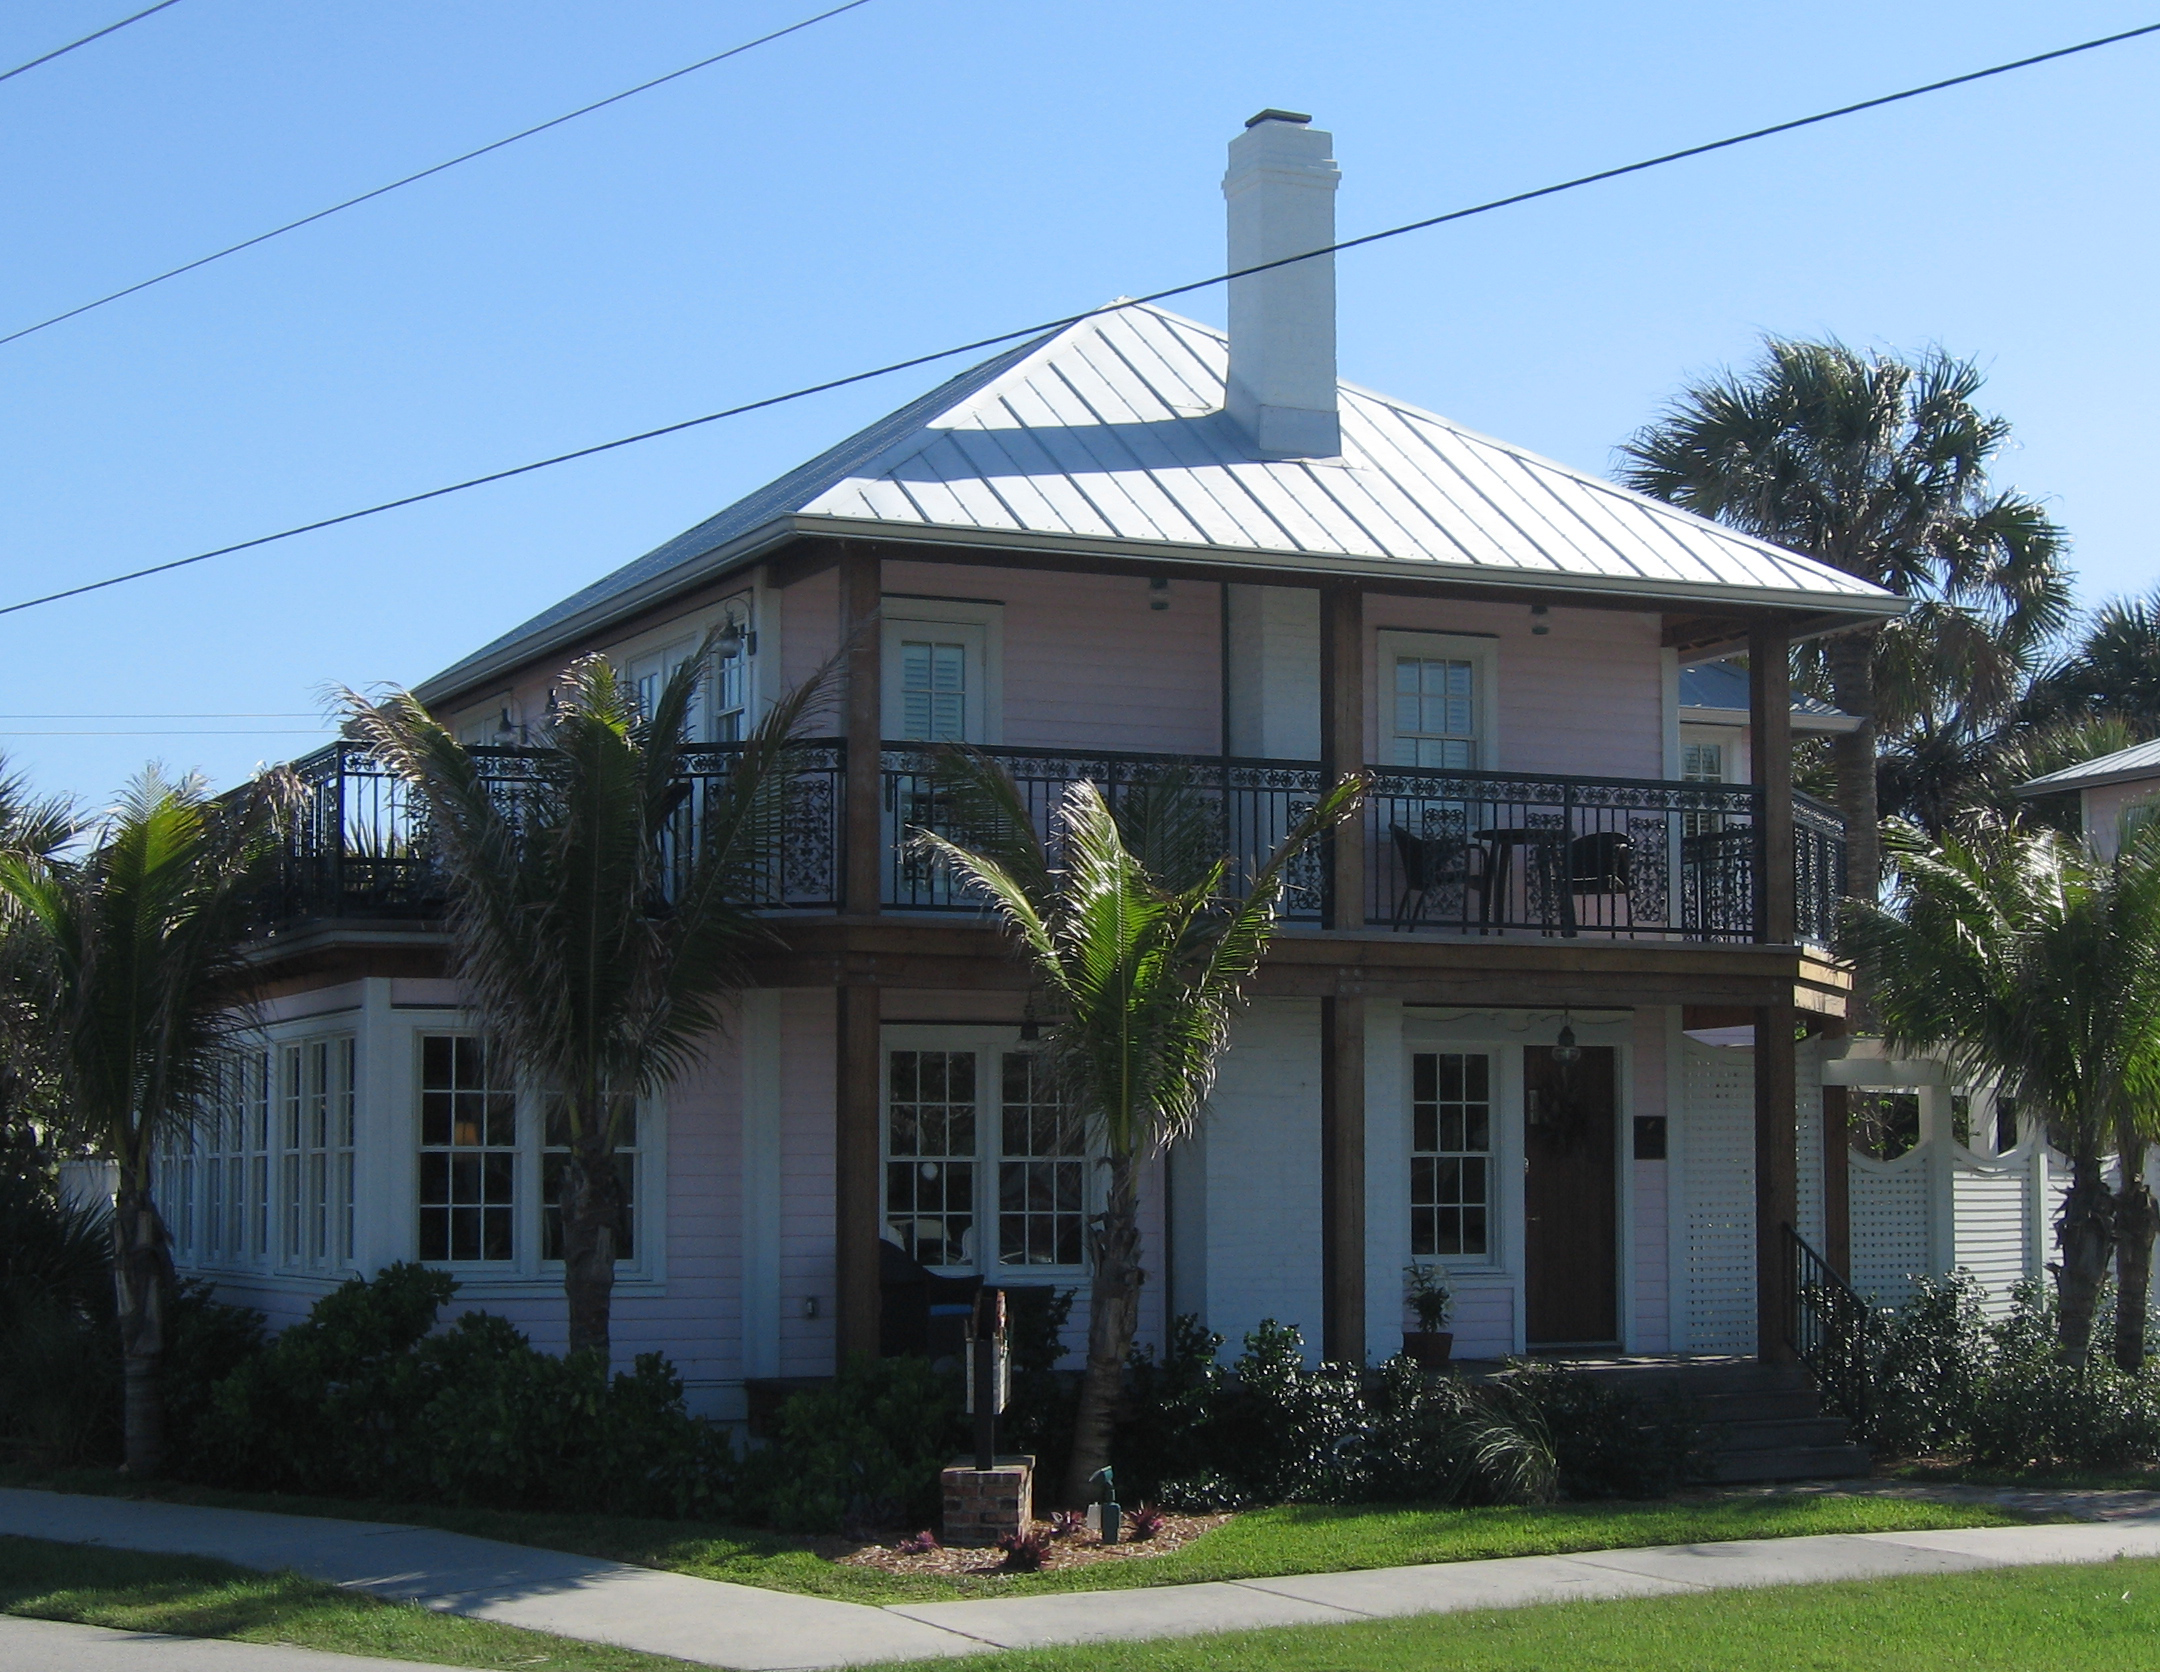 File pink house melbourne beach florida oblique view for Beach house description